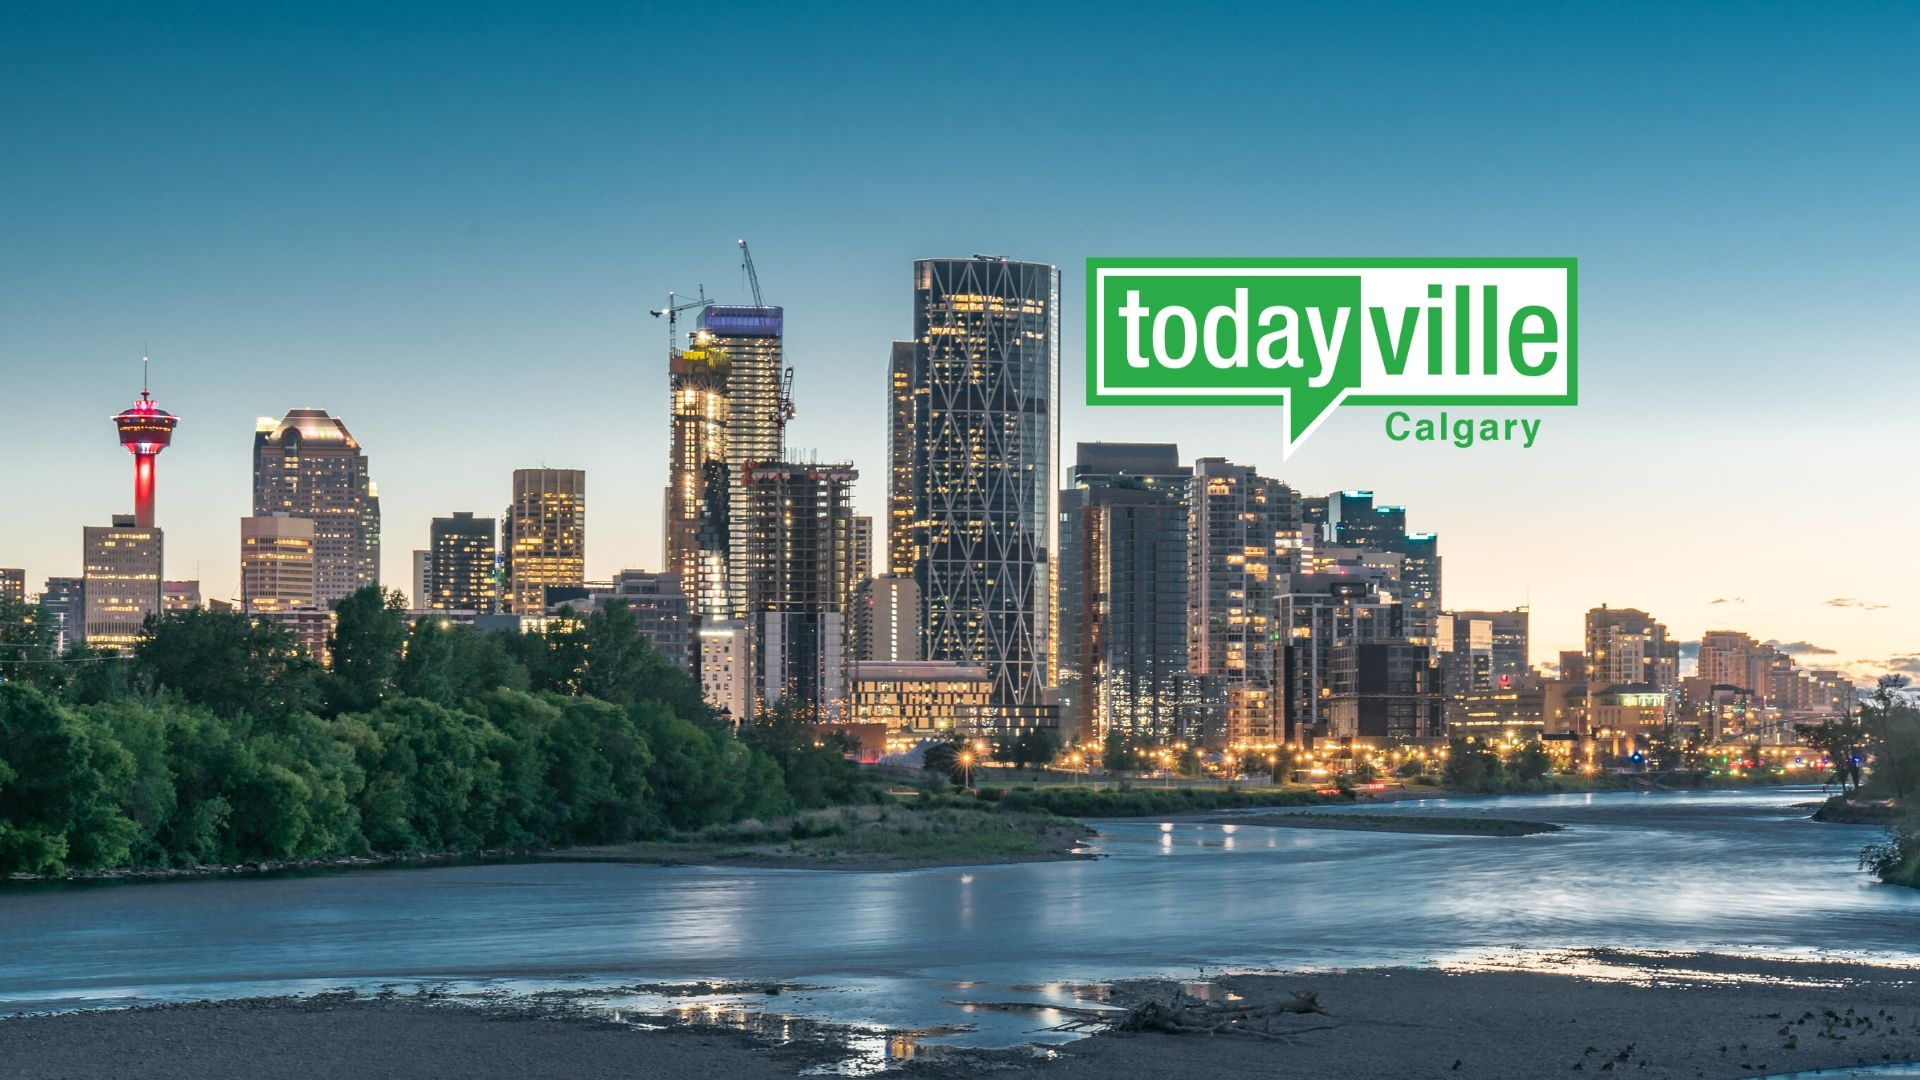 Calgary skyline with Todayville logo